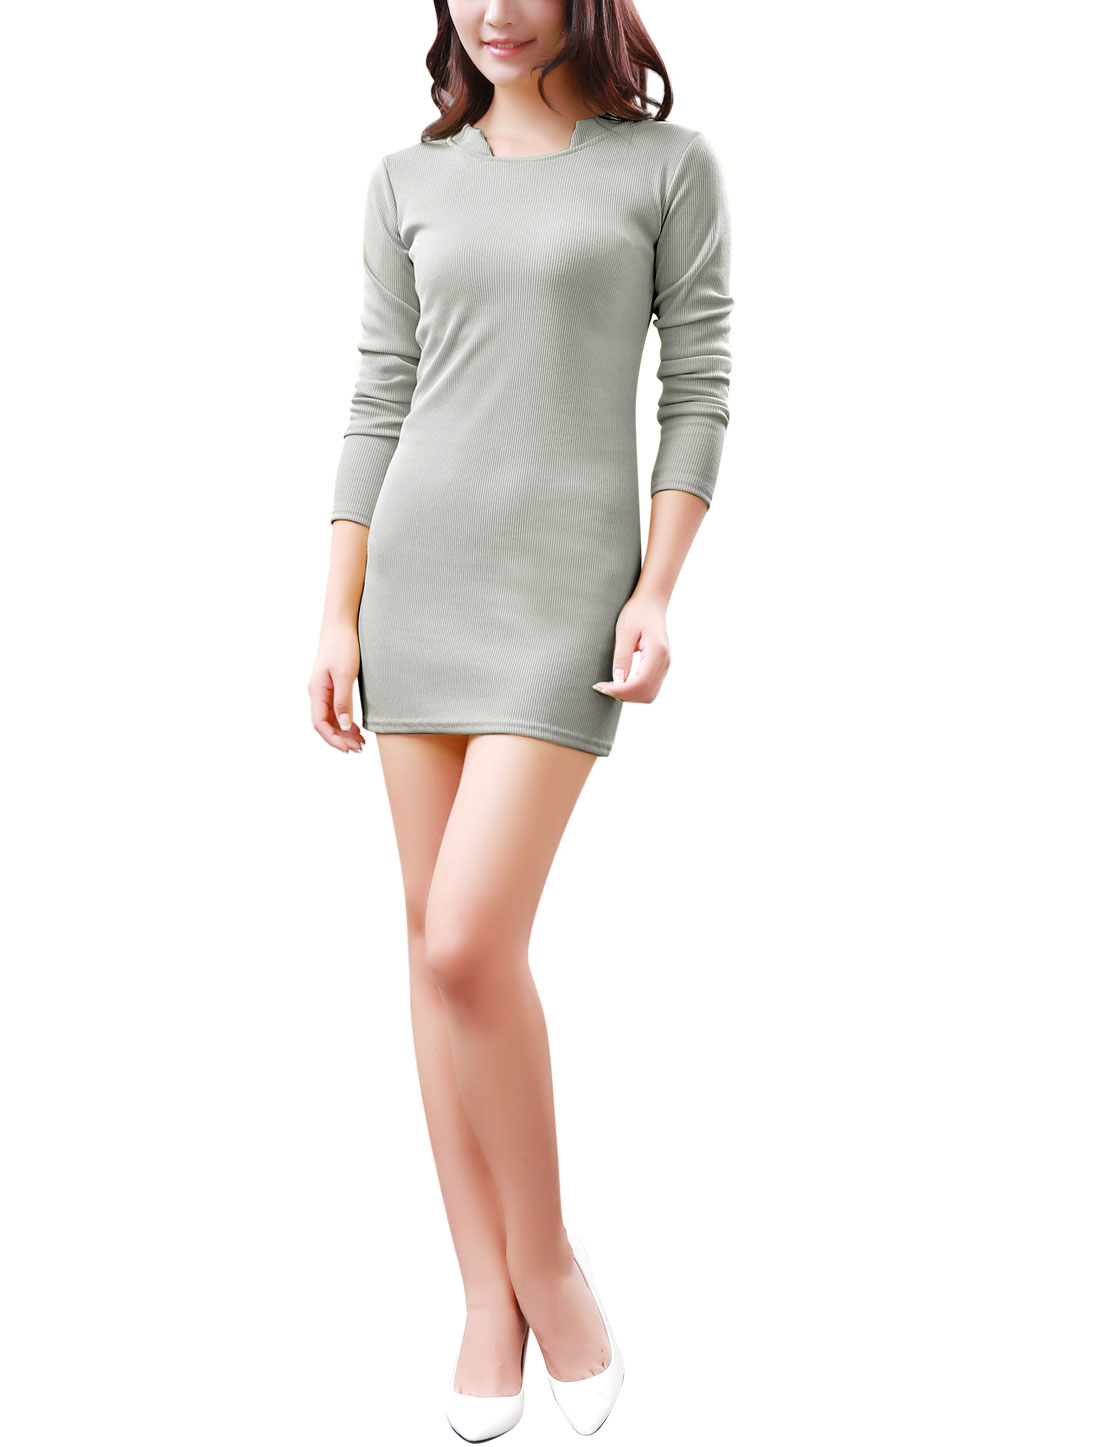 Women Stand Collar Pure Design Ribbed Trim Stretchy Knit Dress Light Gray S